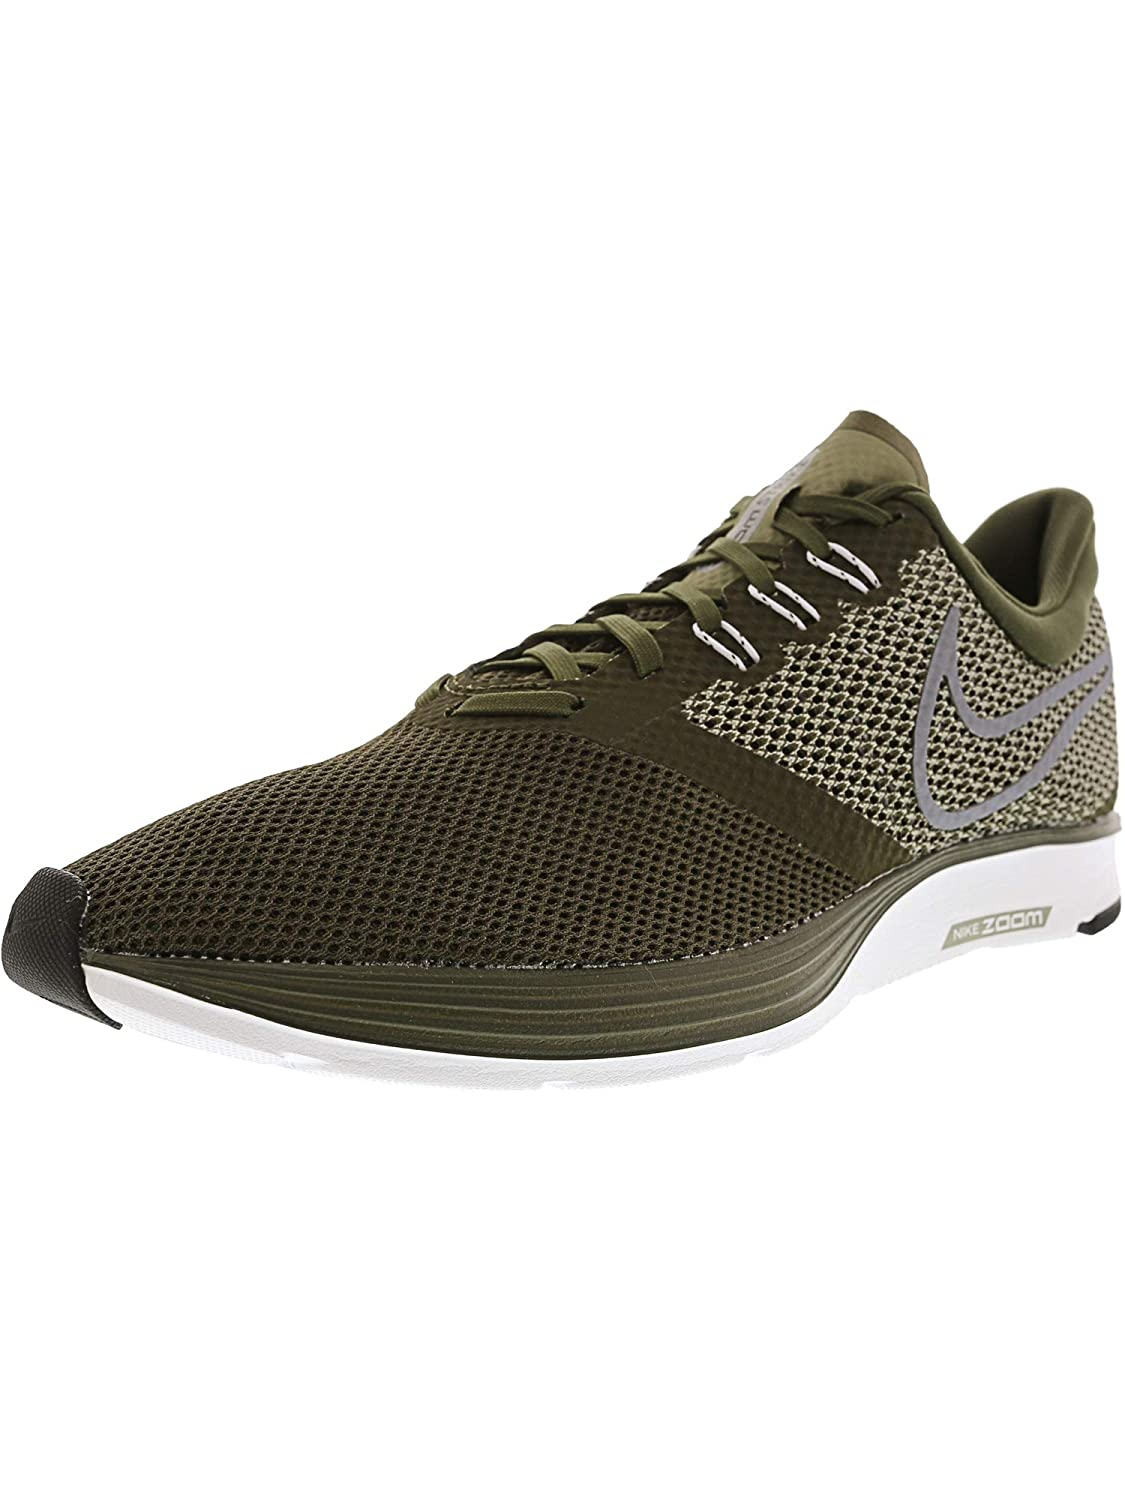 buy online 7639f 15a21 Nike Men s Zoom Strike Running Shoes  Amazon.co.uk  Sports   Outdoors